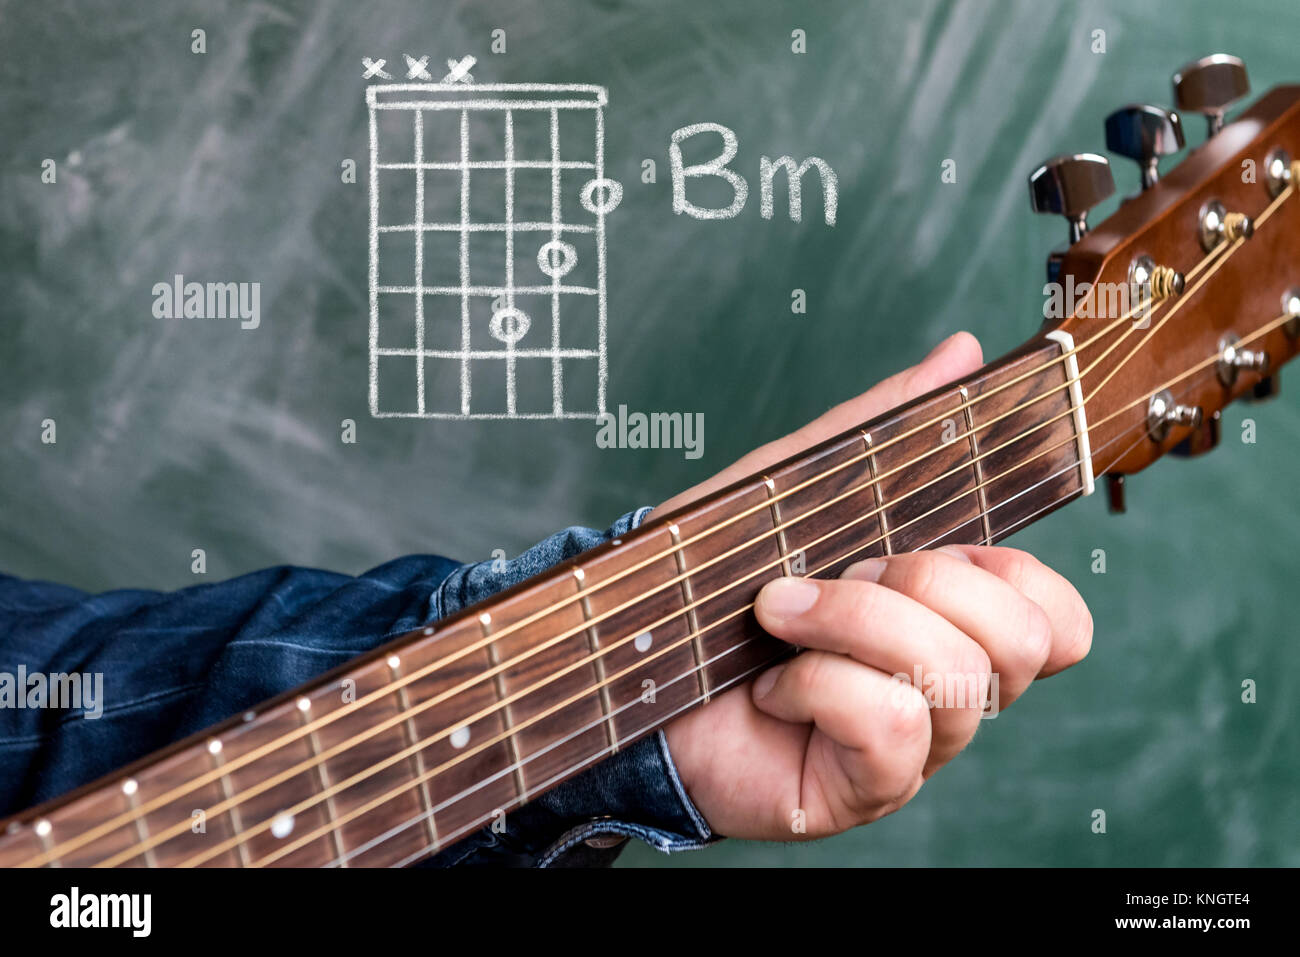 Chords On Guitar Stock Photos Chords On Guitar Stock Images Alamy